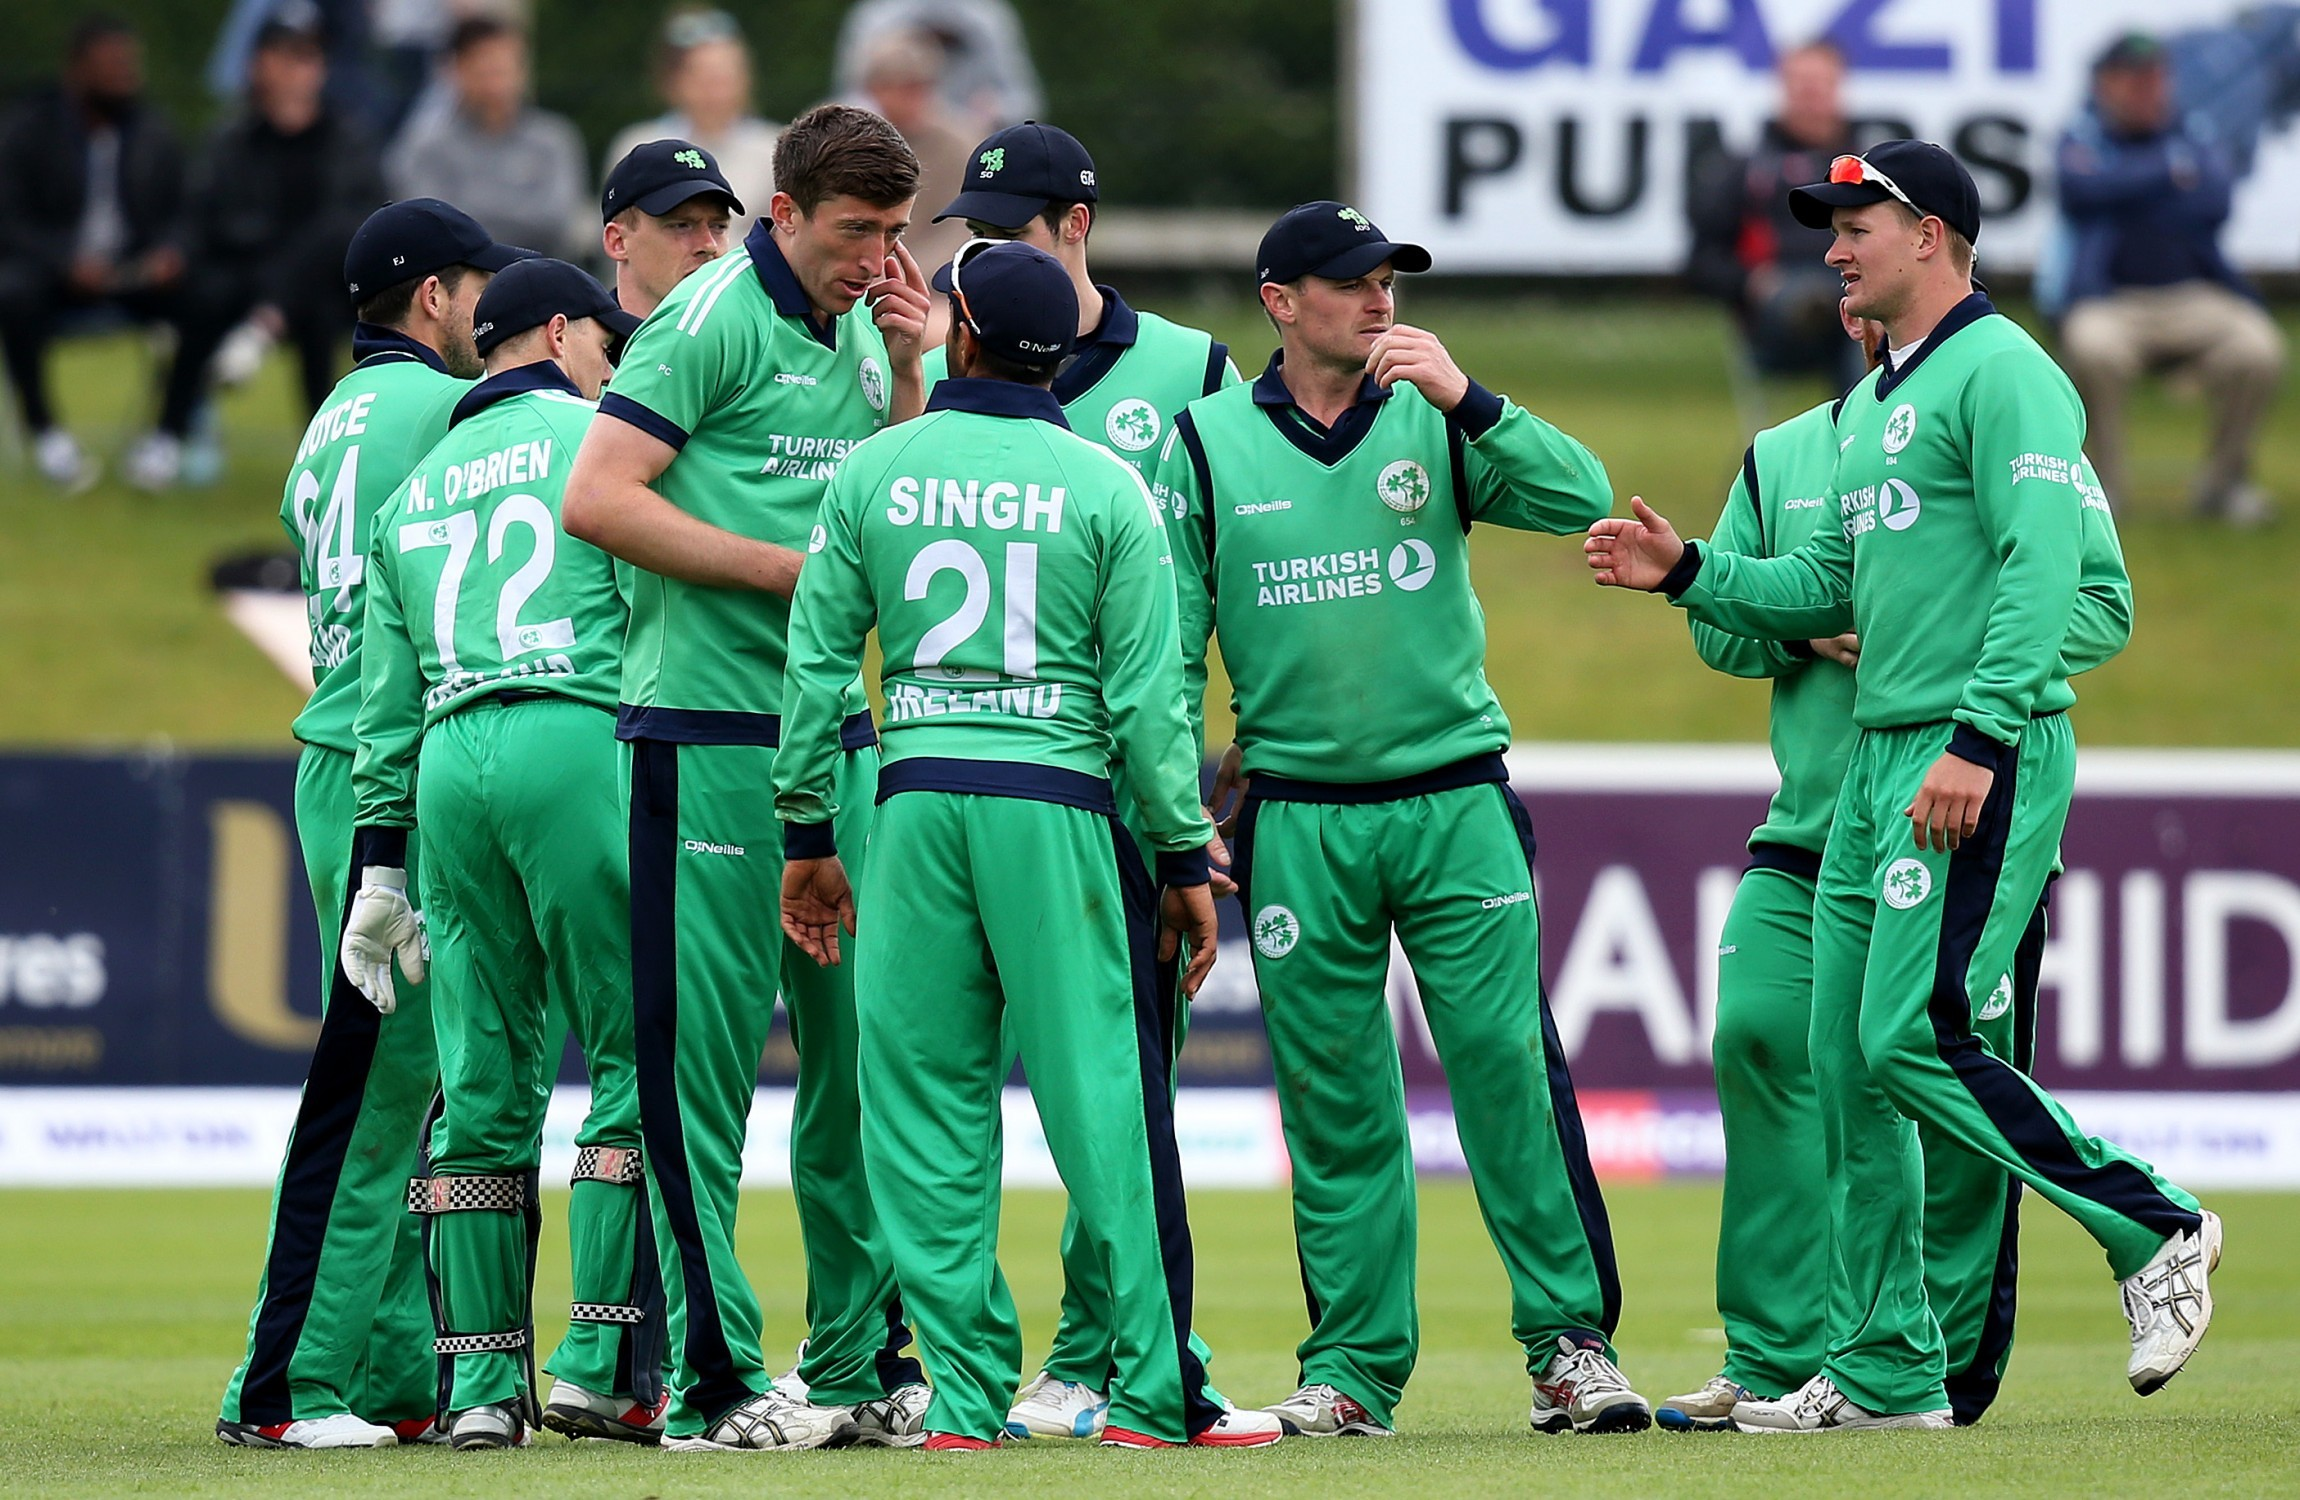 Ireland are granted Test match status